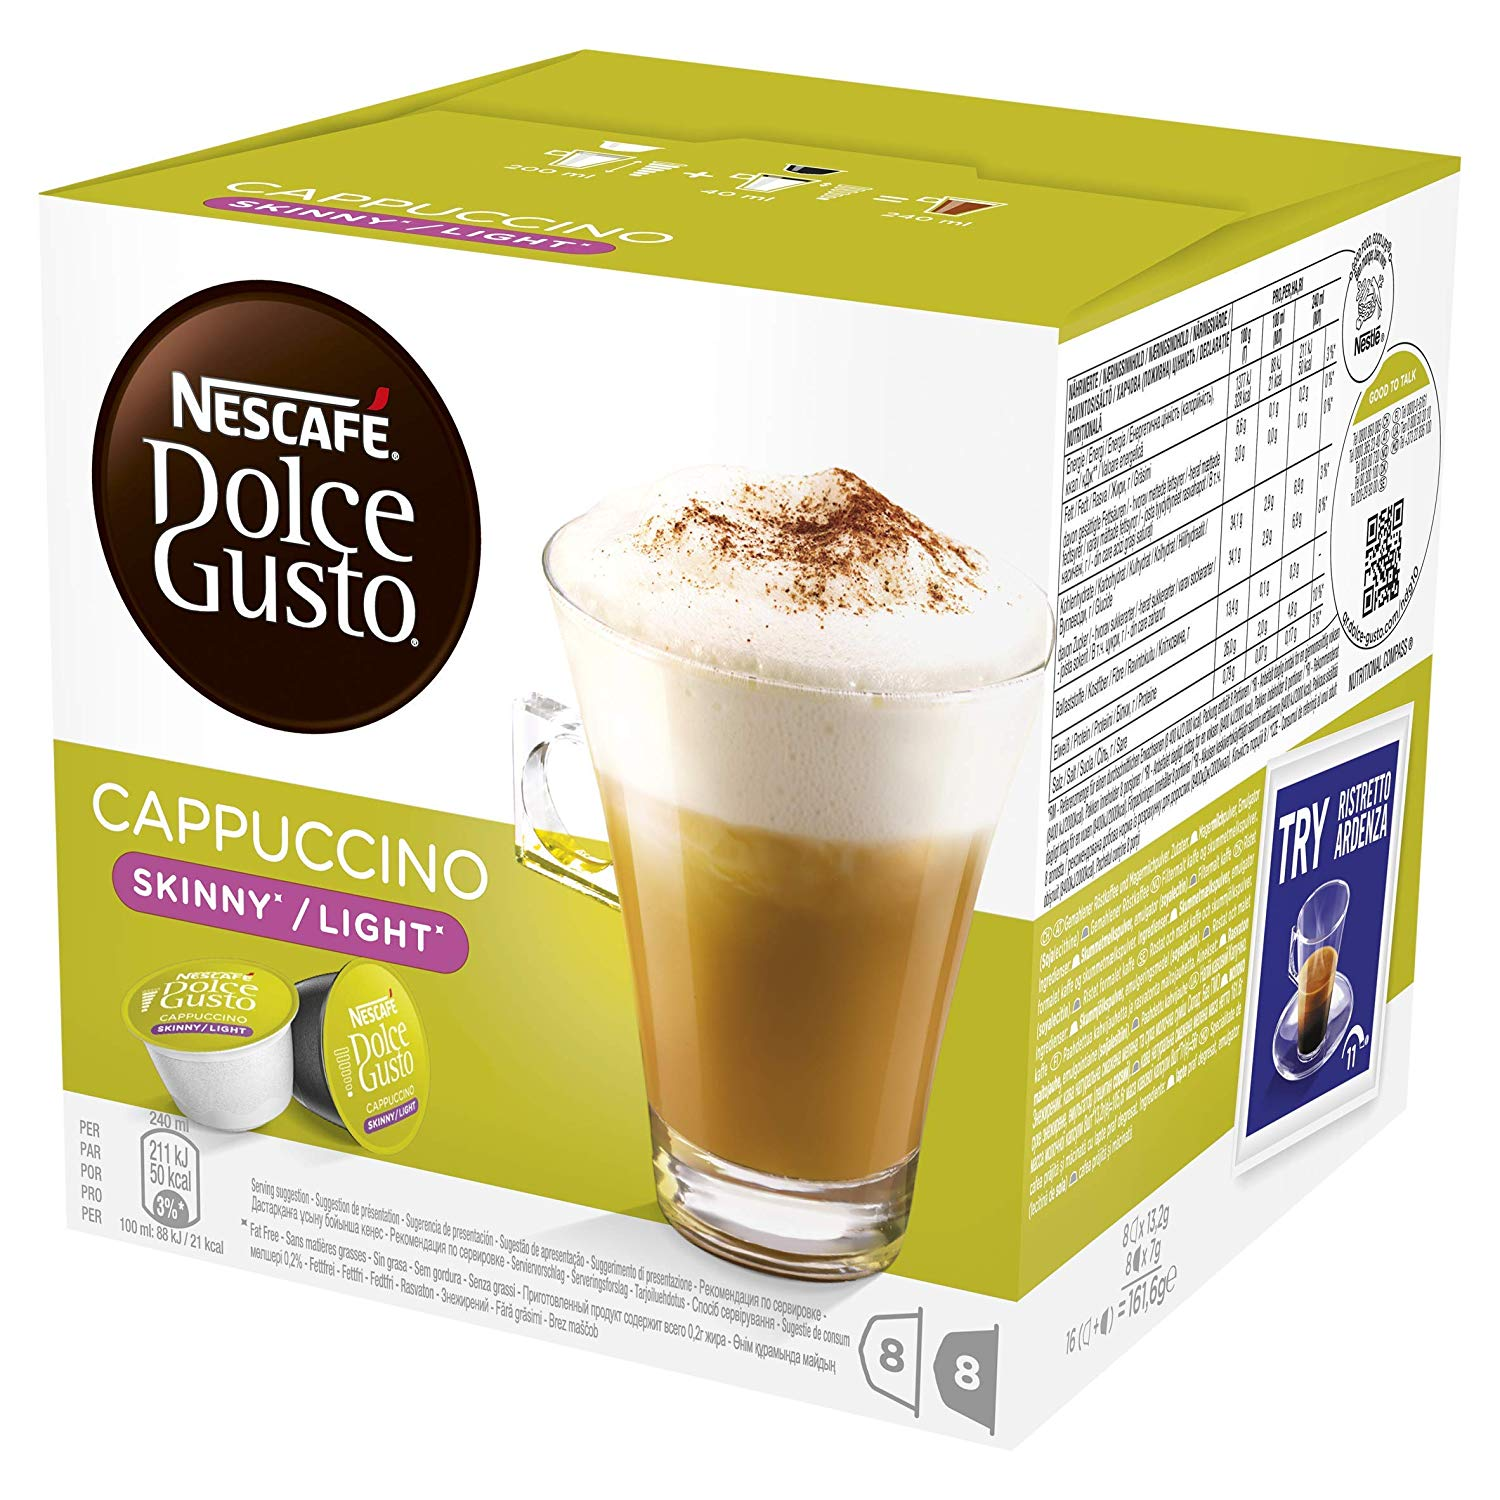 NESCAF DOLCE GUSTO Cappuccino Skinny/Light Coffee Pods